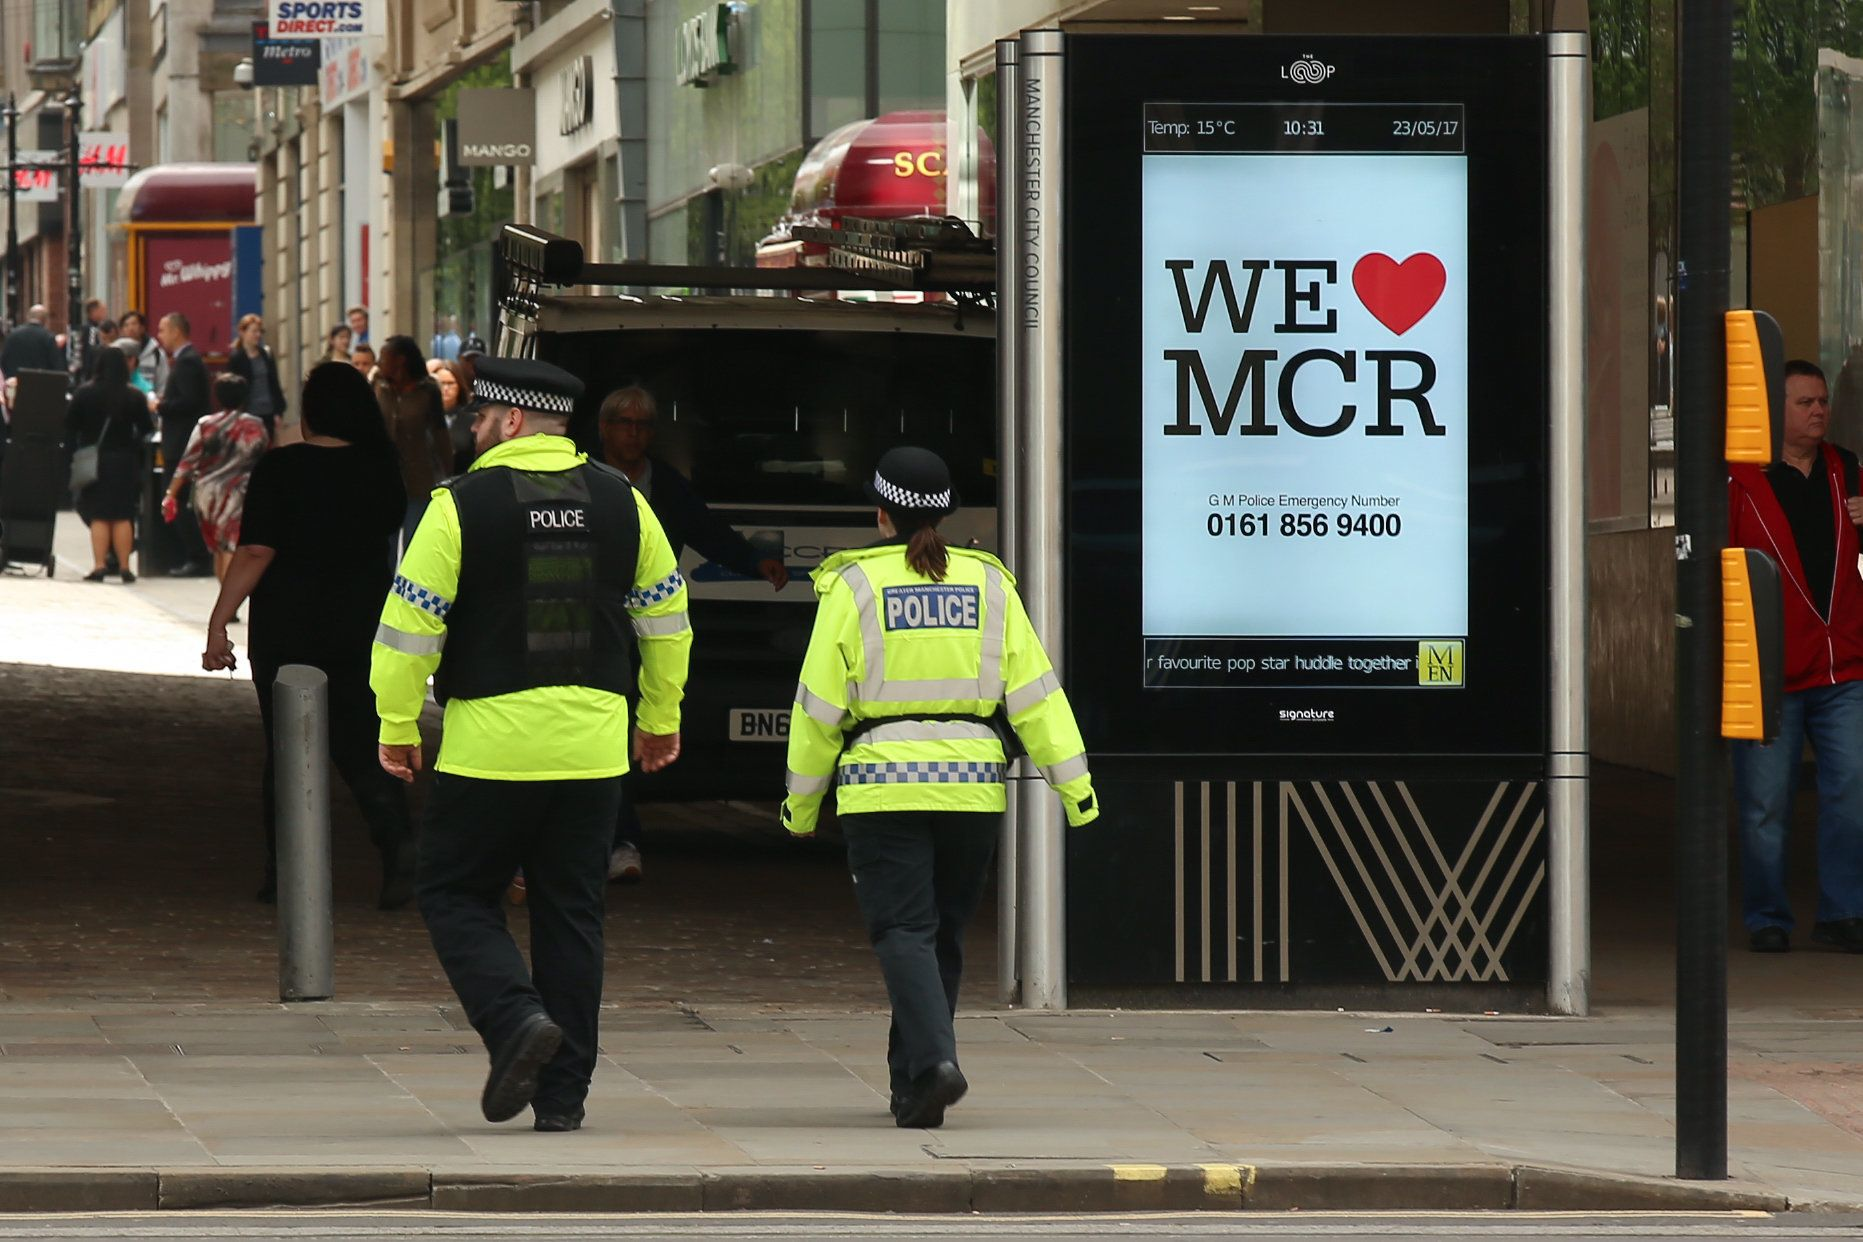 Mancunians Give An Absolute Masterclass In Defiance Following Suicide